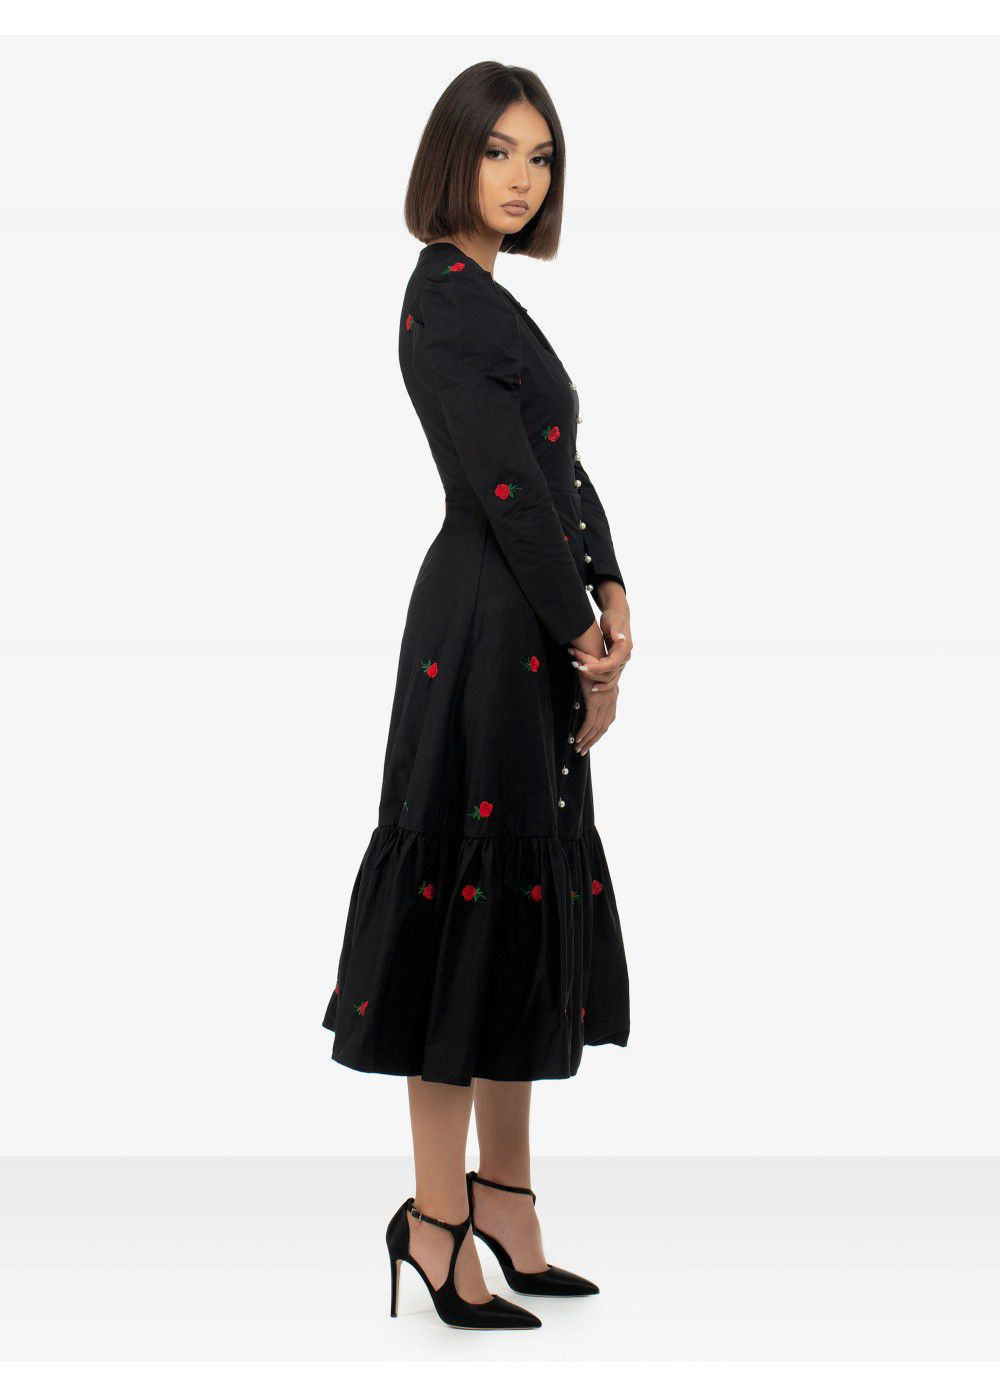 Sister Jane Black Midi Dress